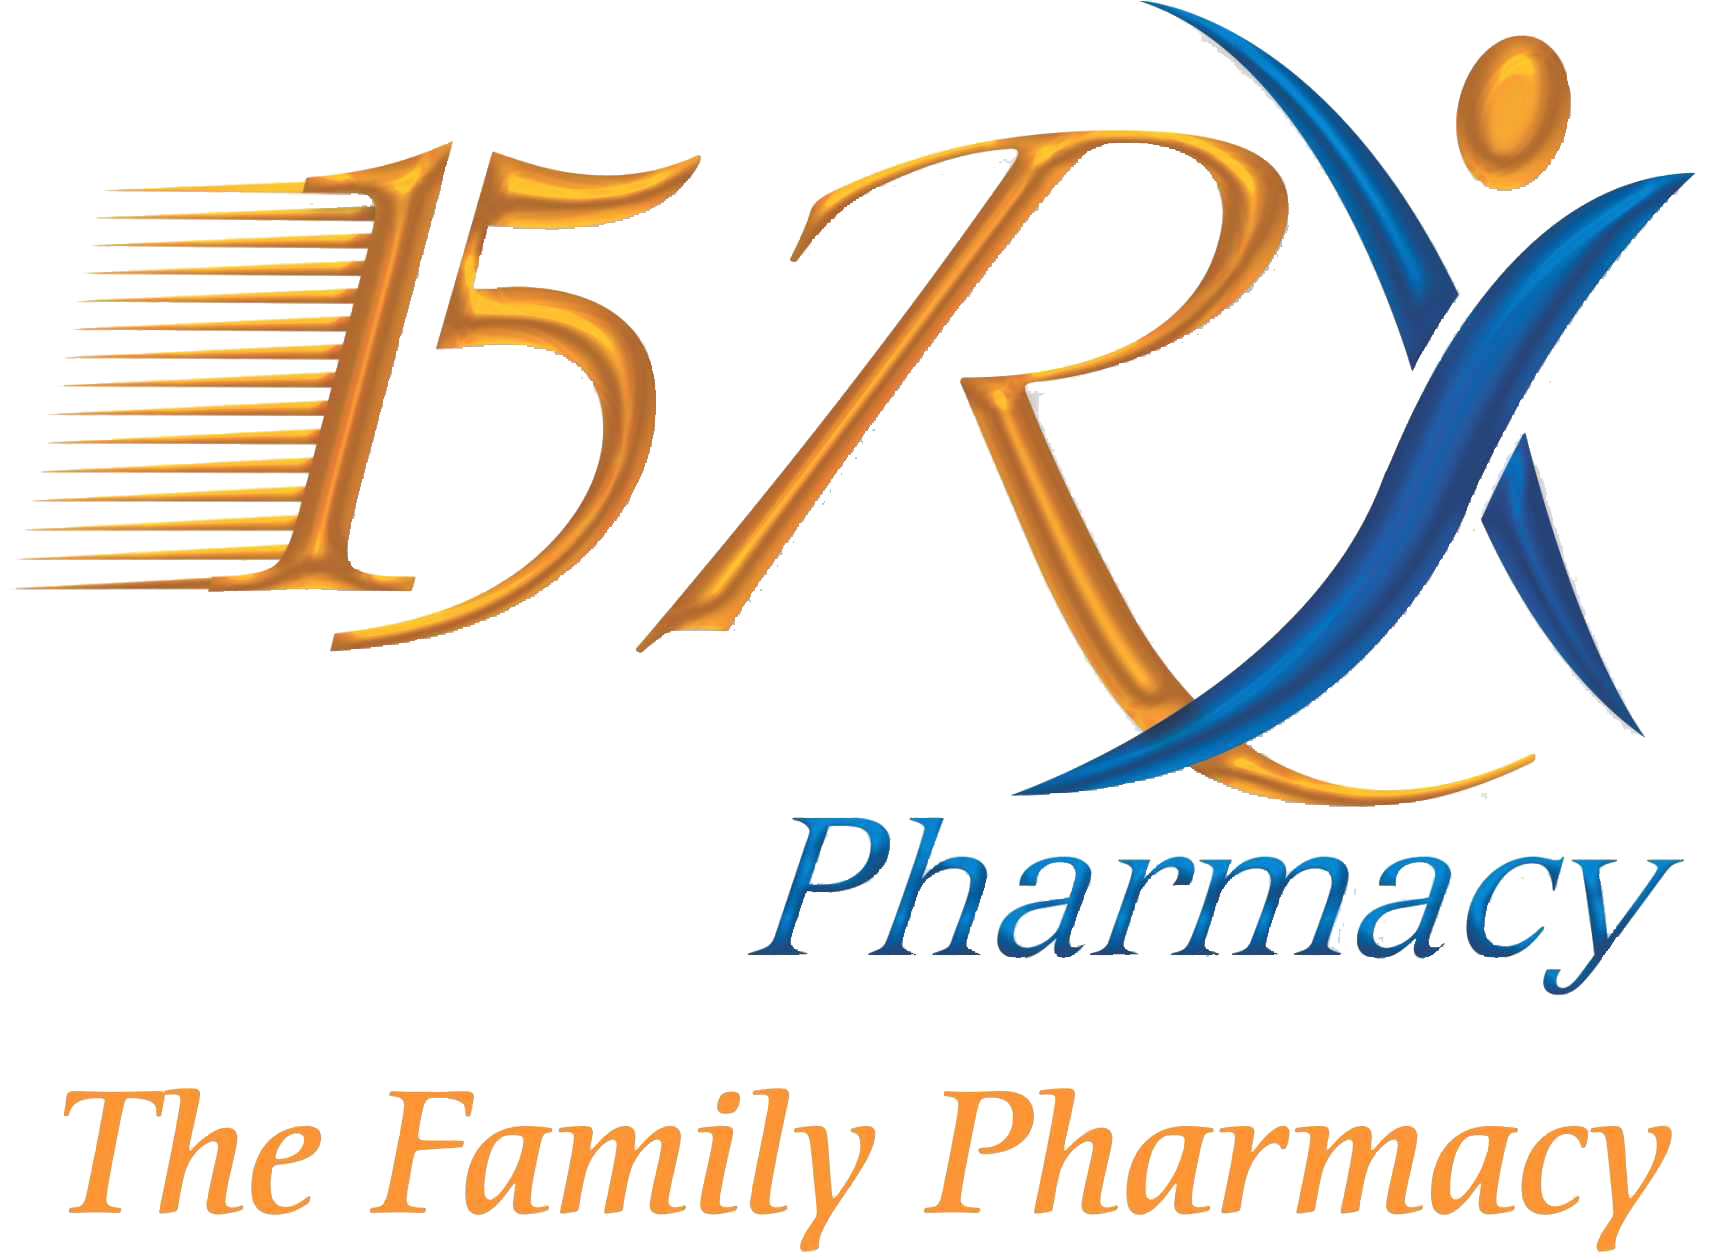 15RX Pharmacy